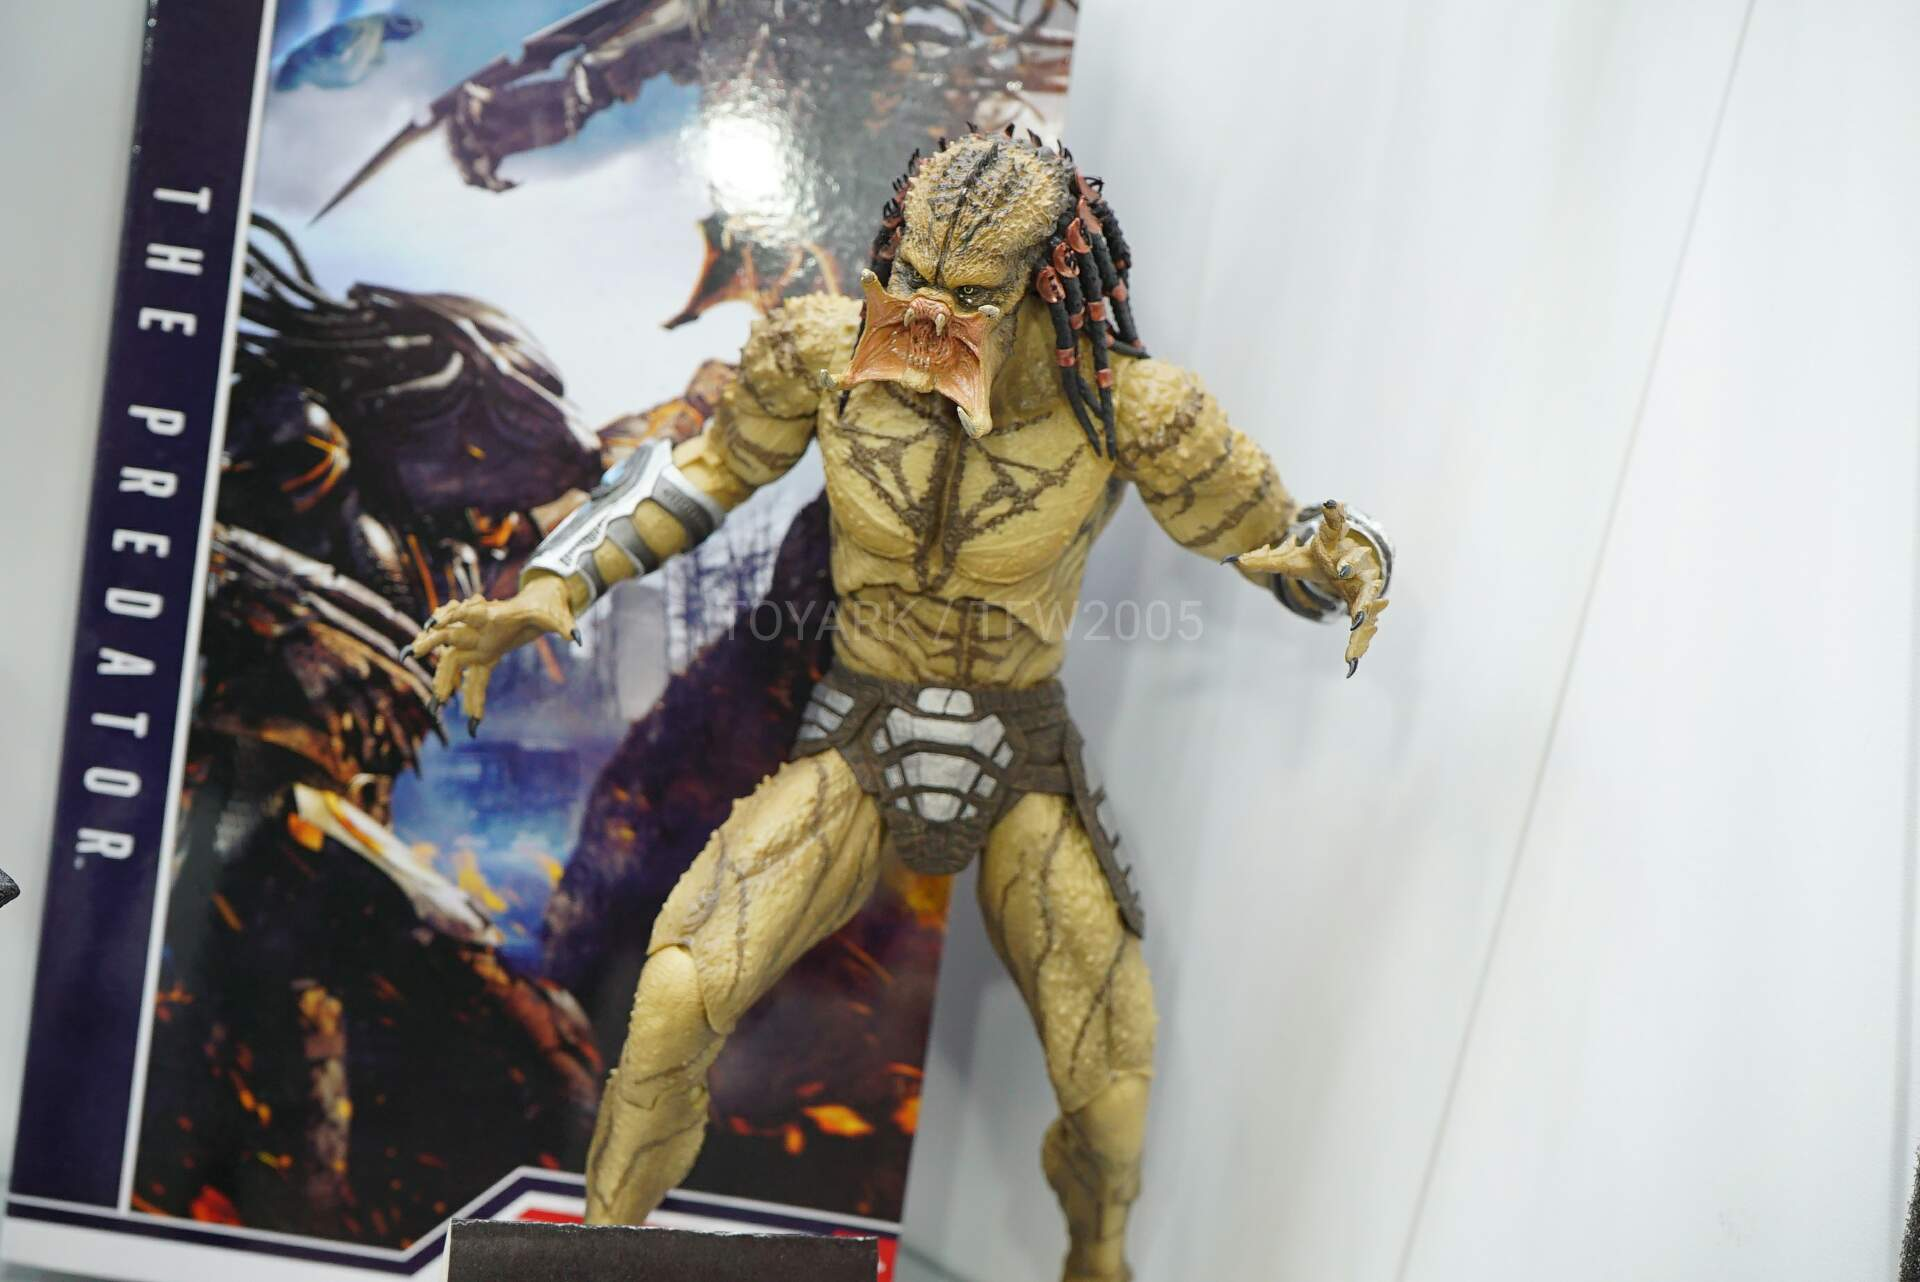 Toy-Fair-2020-NECA-Alien-and-Predator-033.jpg